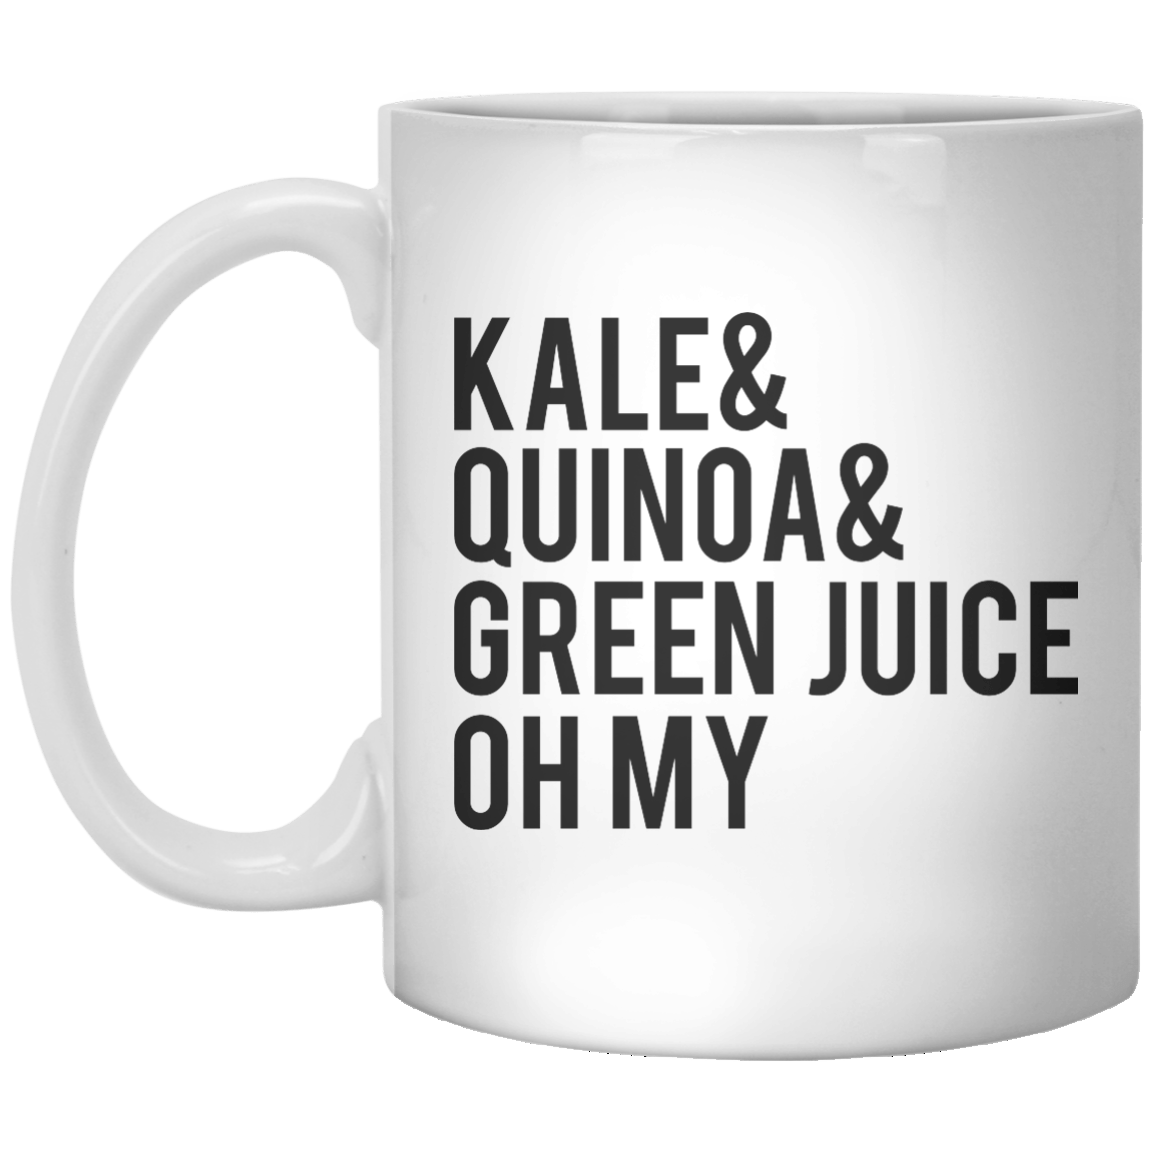 kale& quinoa& green juice oh my MUG - Shirtoopia